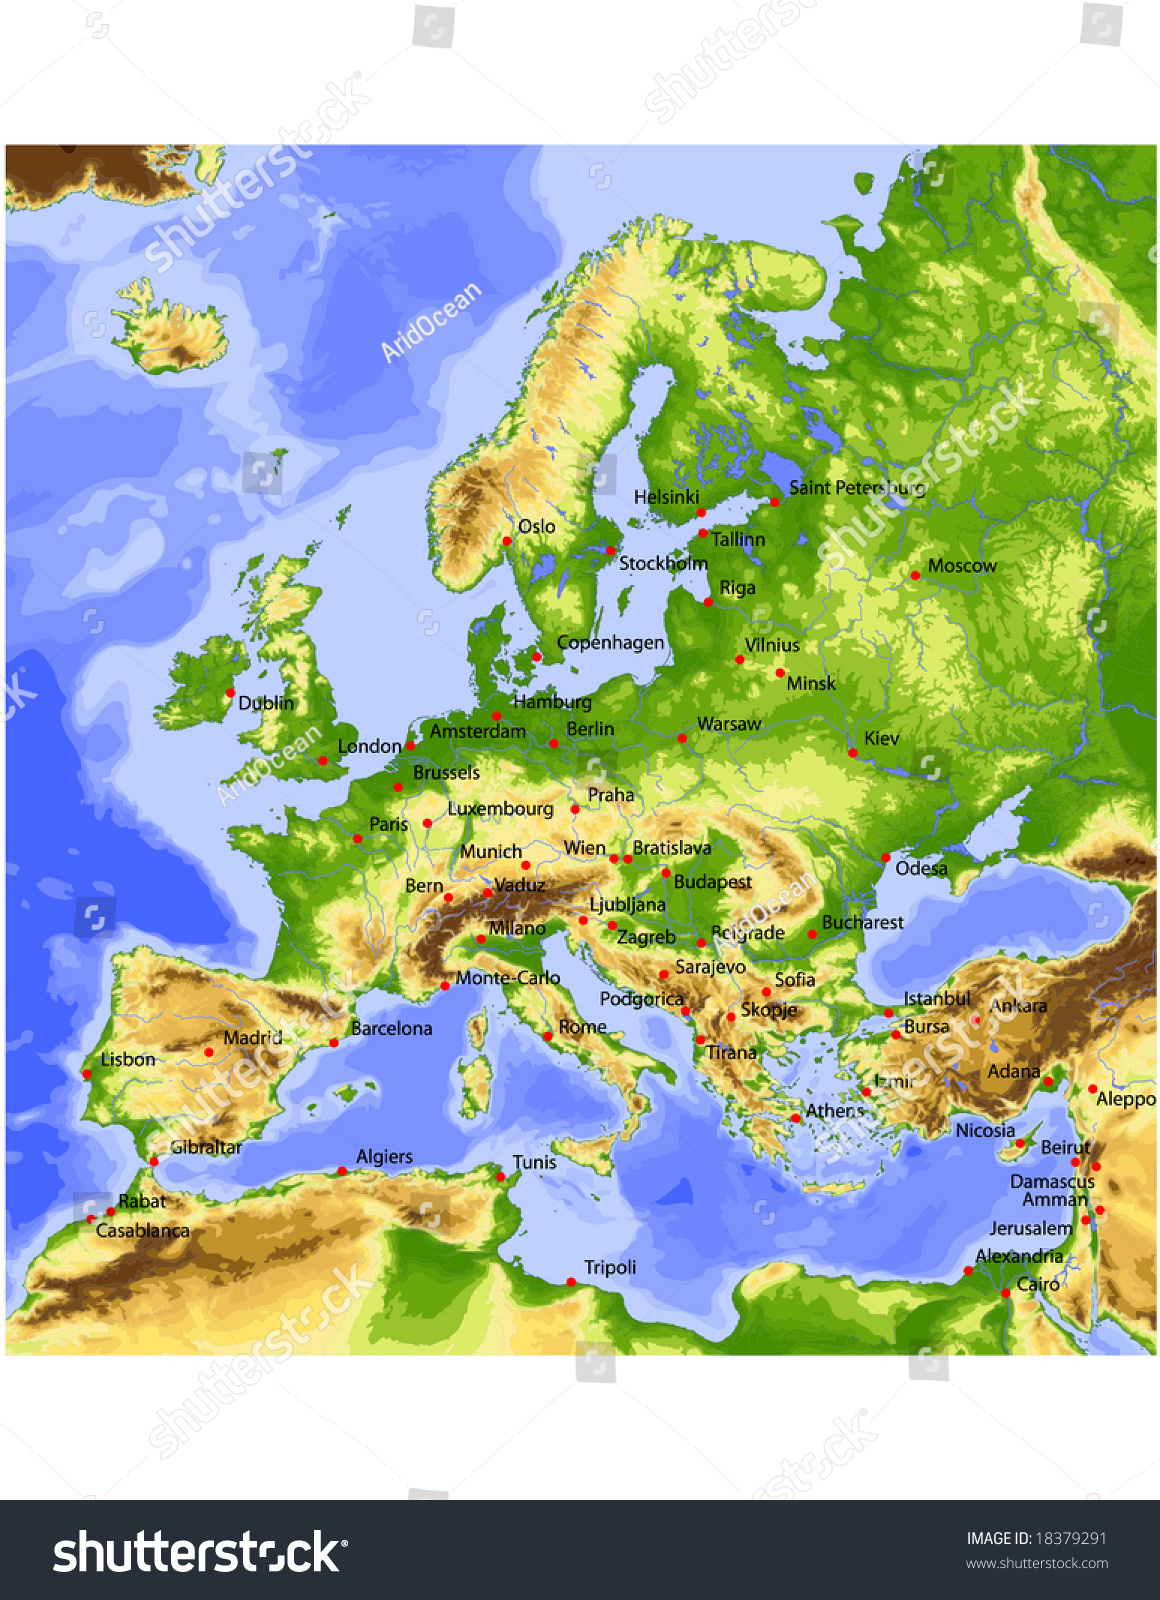 Europe physical vector map colored according vectores en stock physical vector map colored according to elevation with rivers ocean depths gumiabroncs Image collections